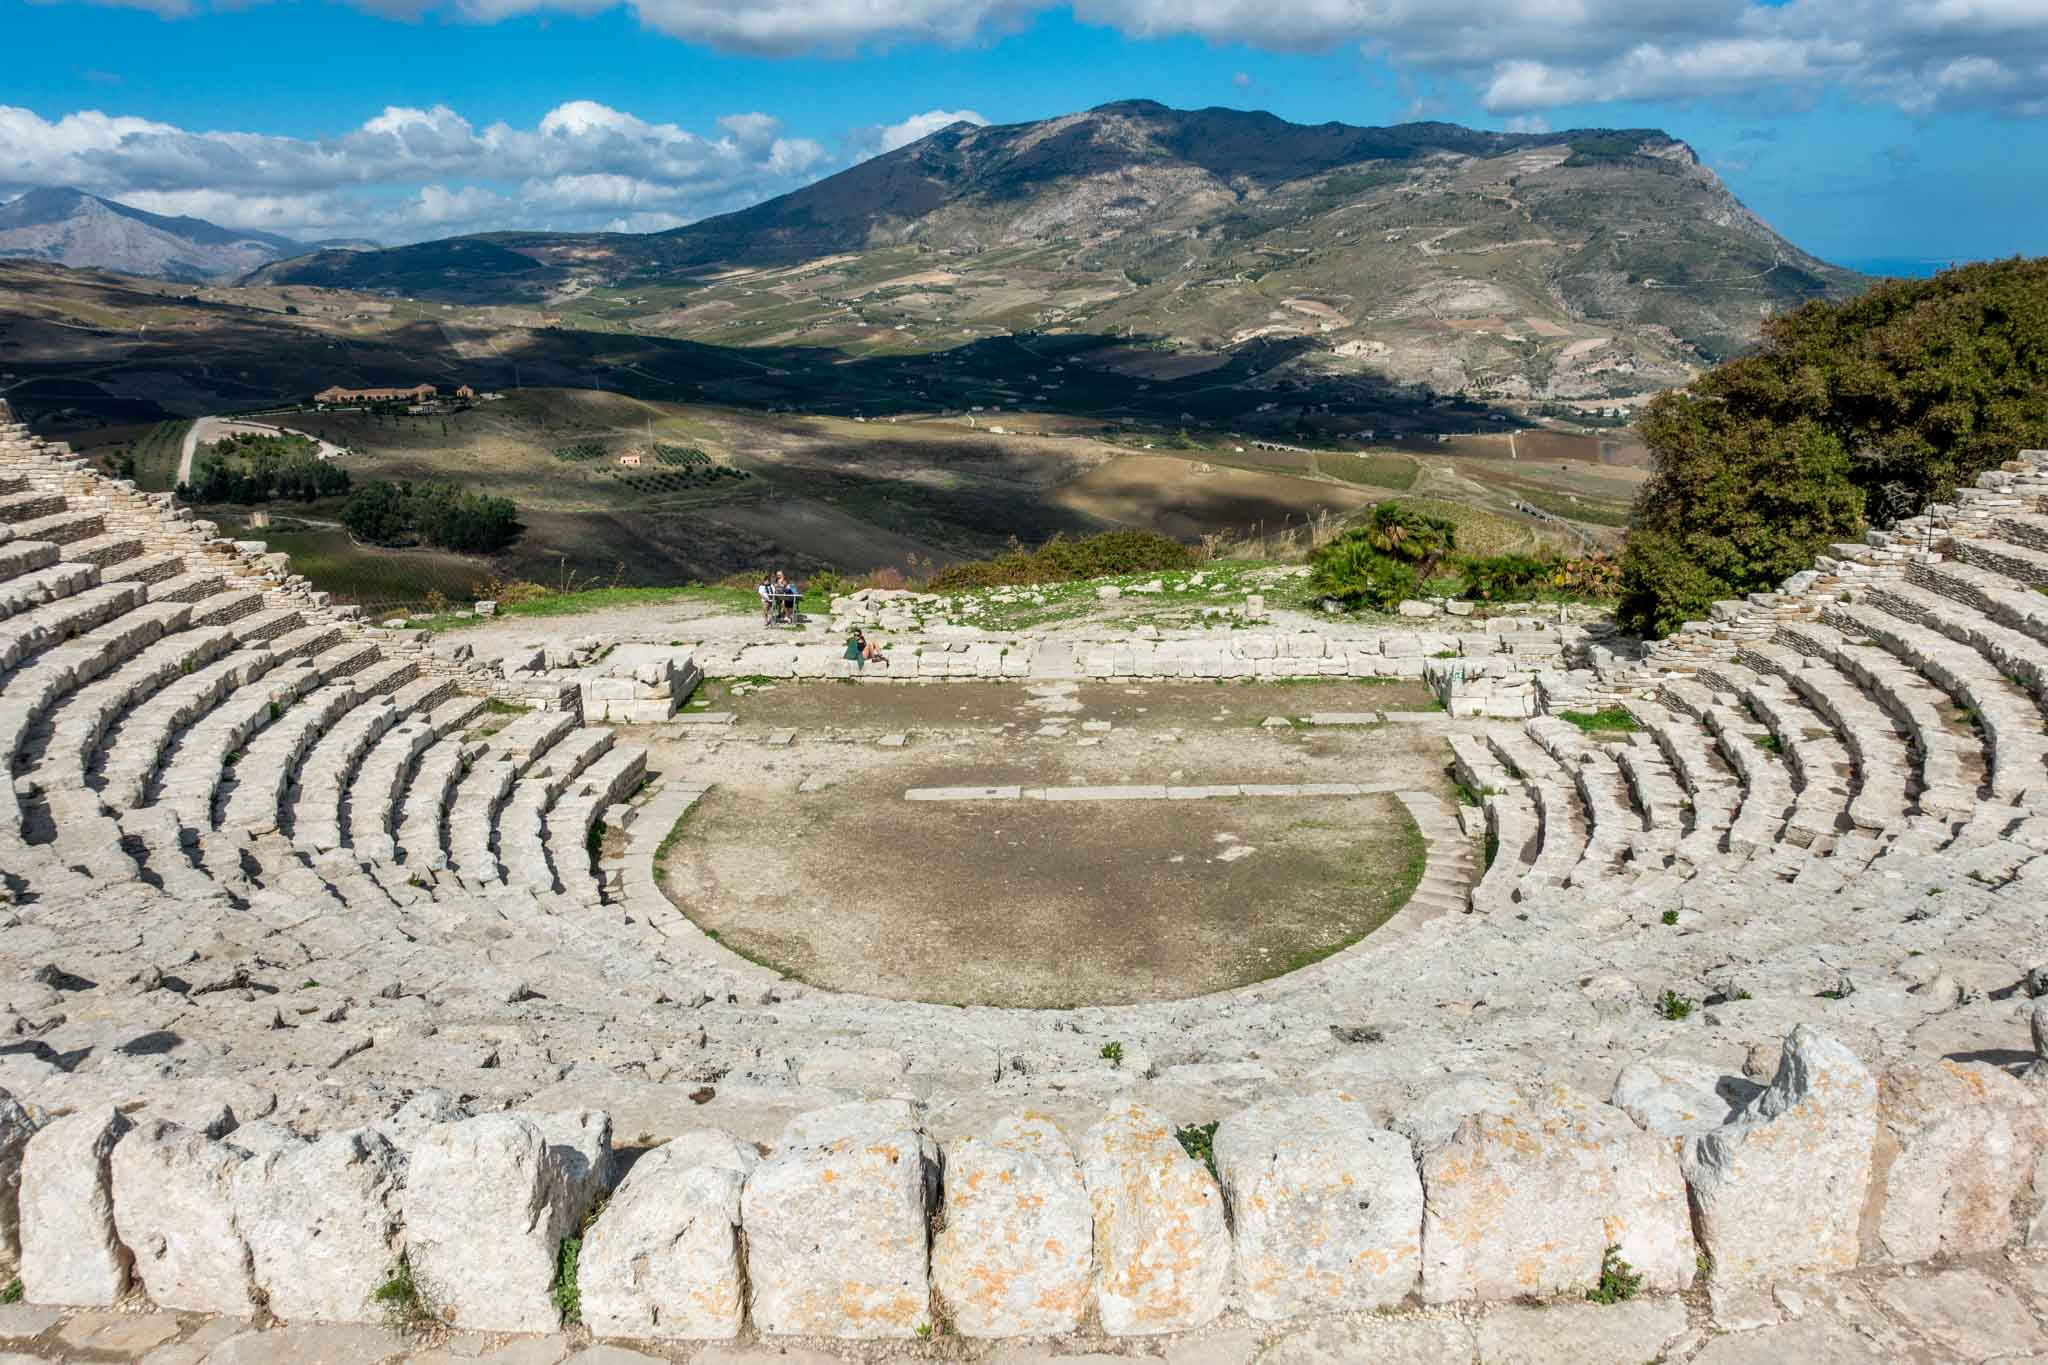 View of mountains and valley from an ancient amphitheater